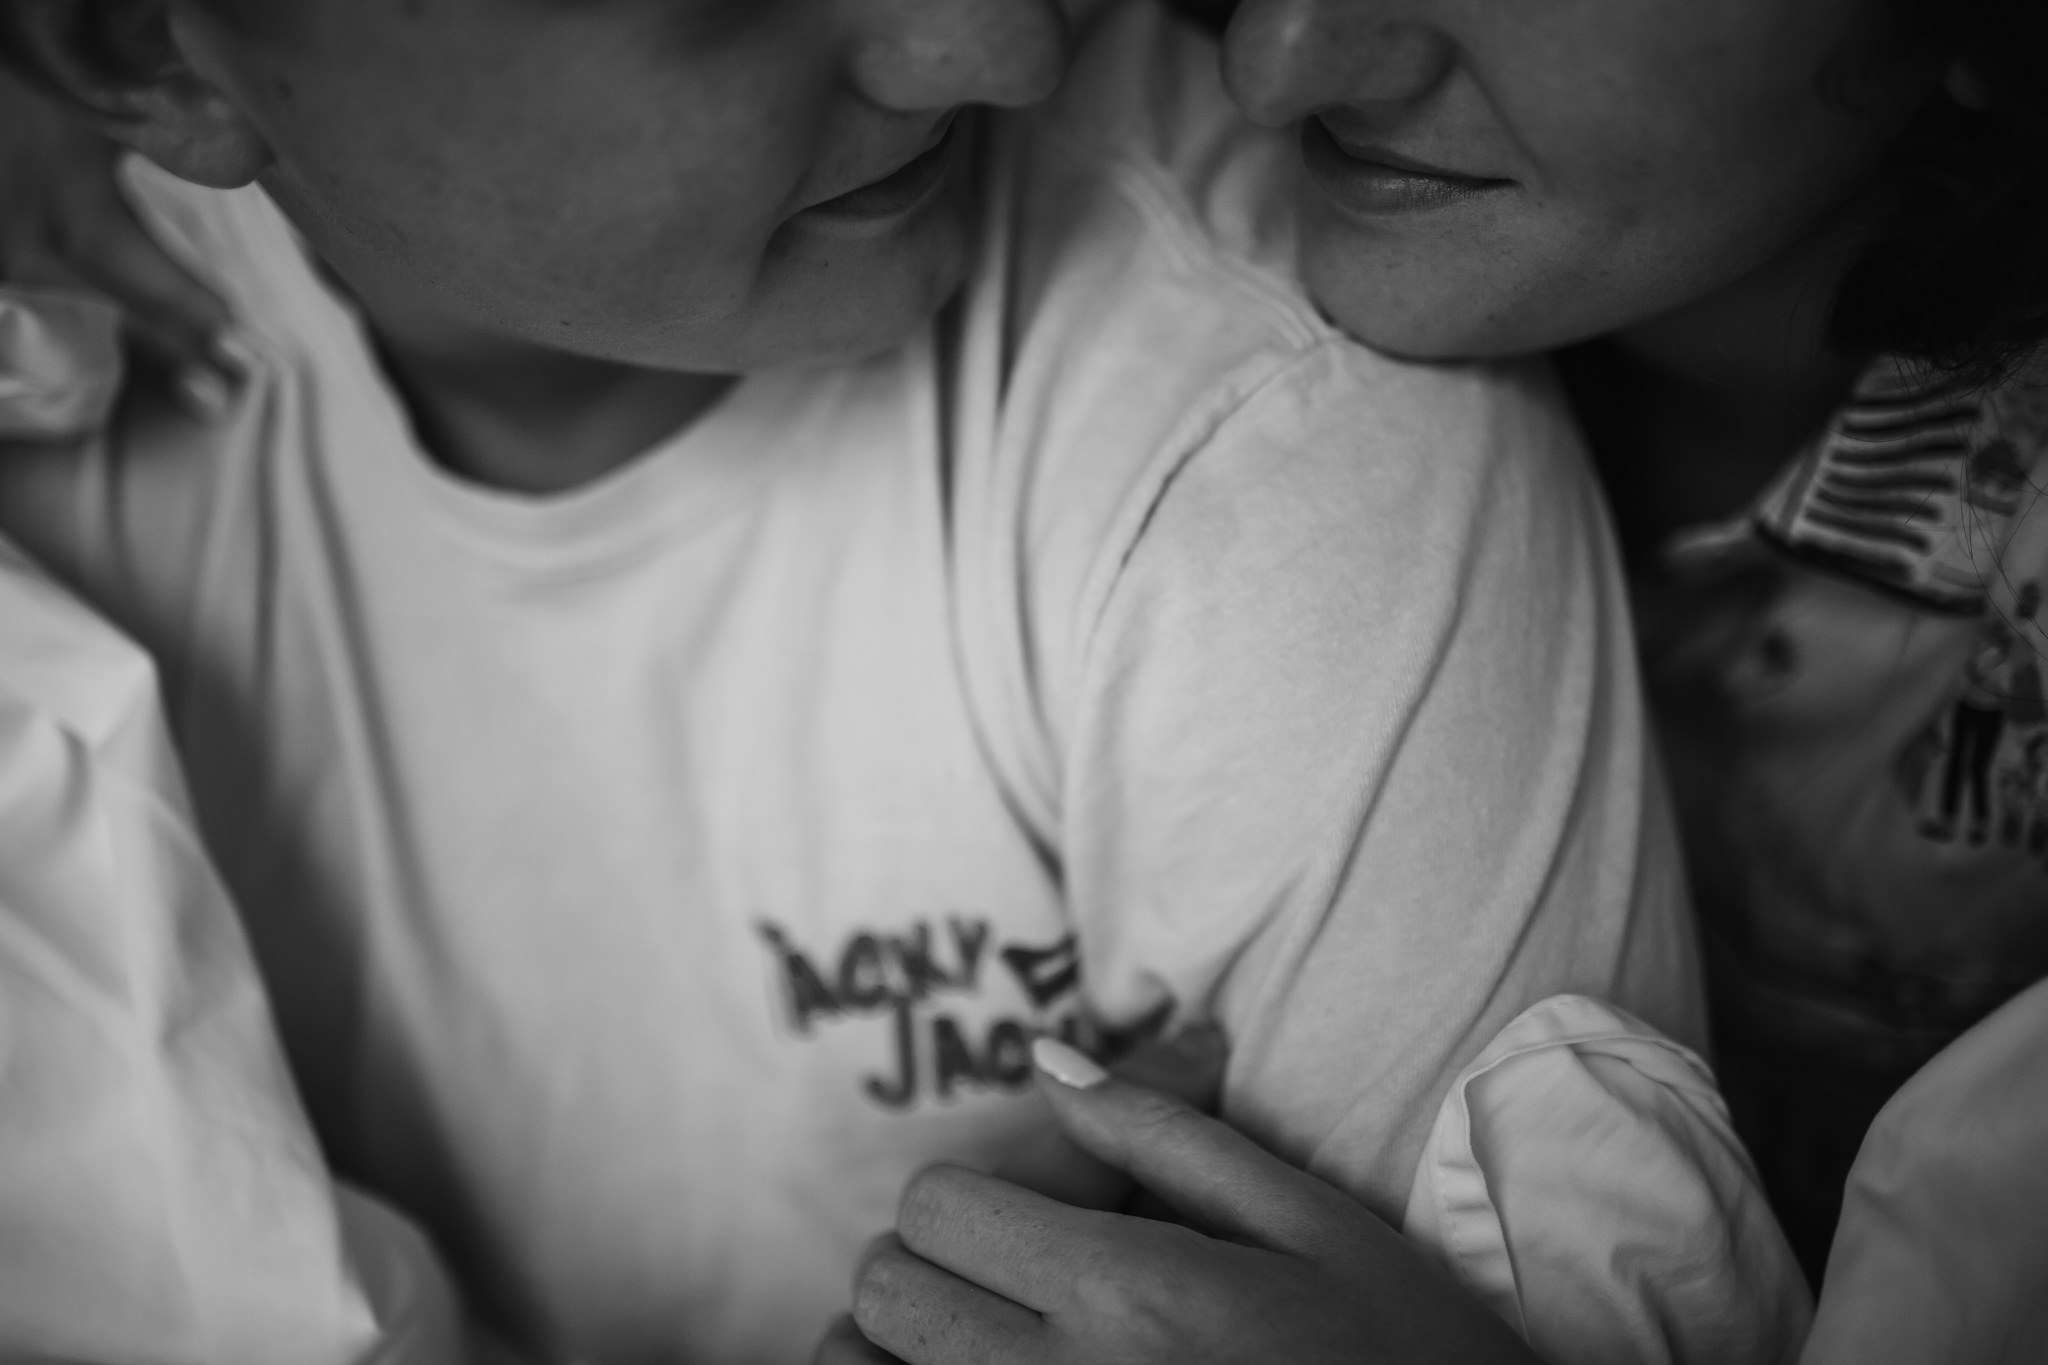 in-home-session-newlyweds-cassie-cook-photography-rosemary-beach-26.jpg